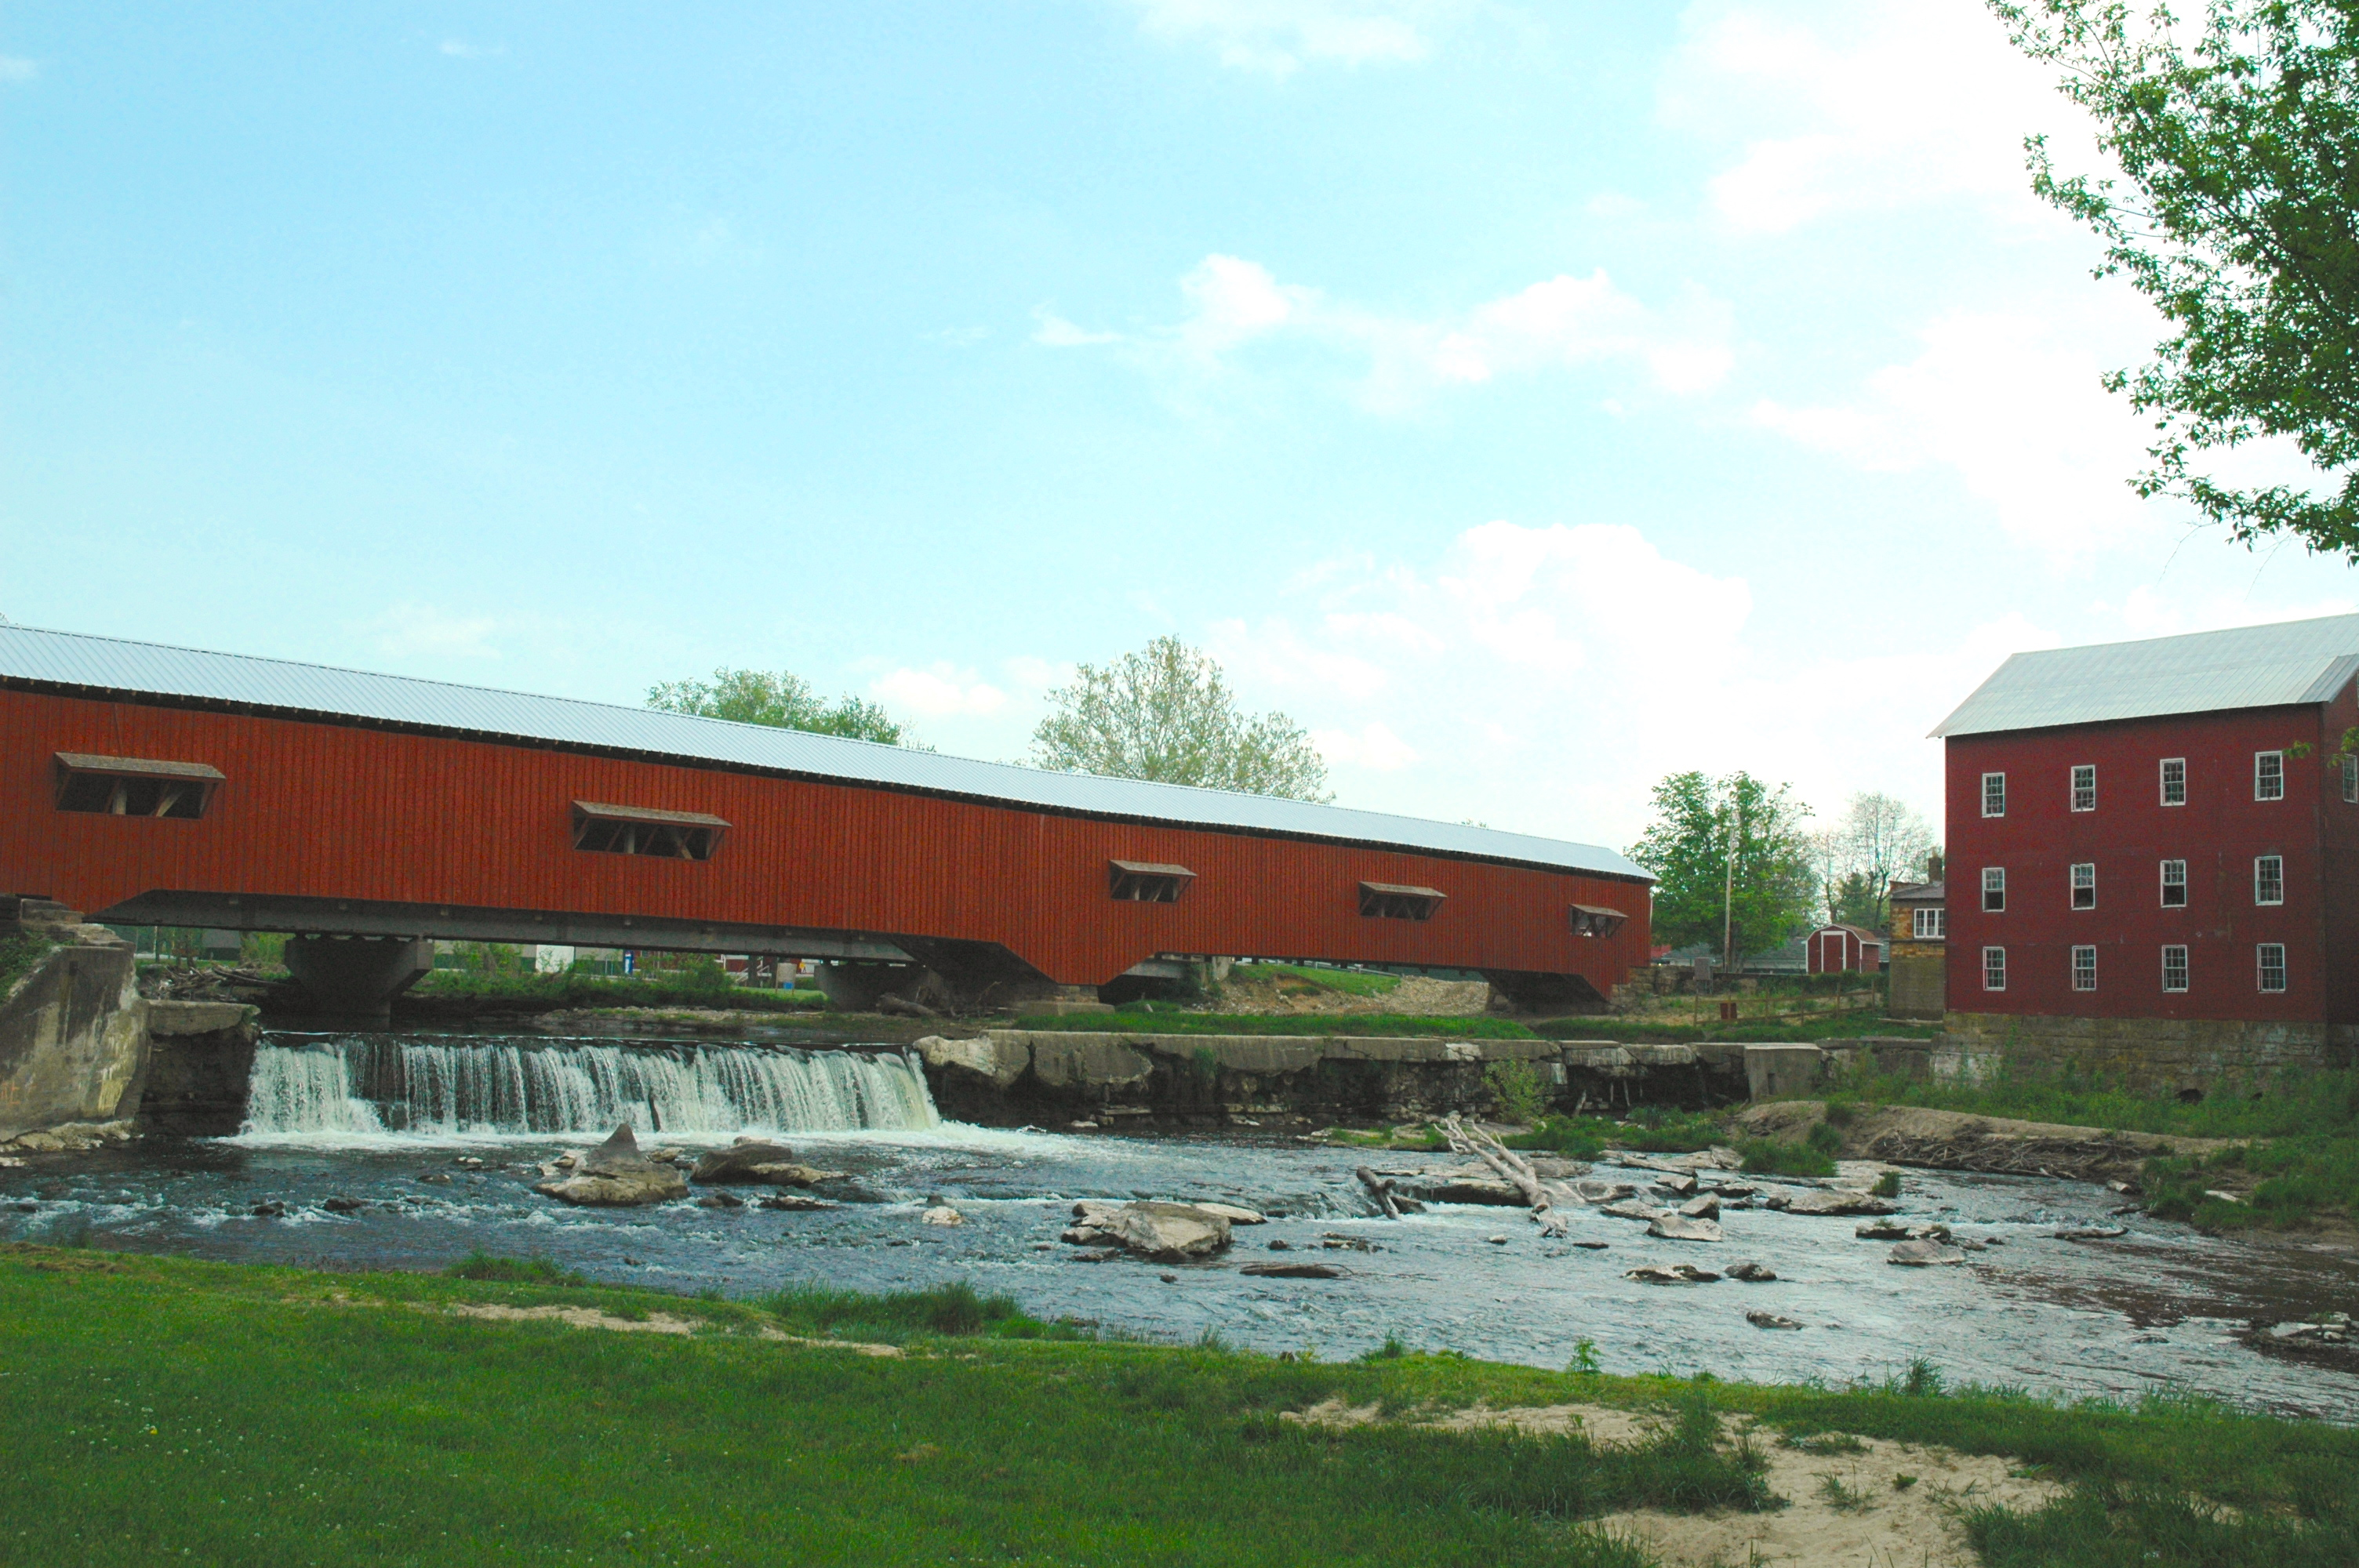 Bridgeton Mill: Grinding Away for Almost Two Centuries